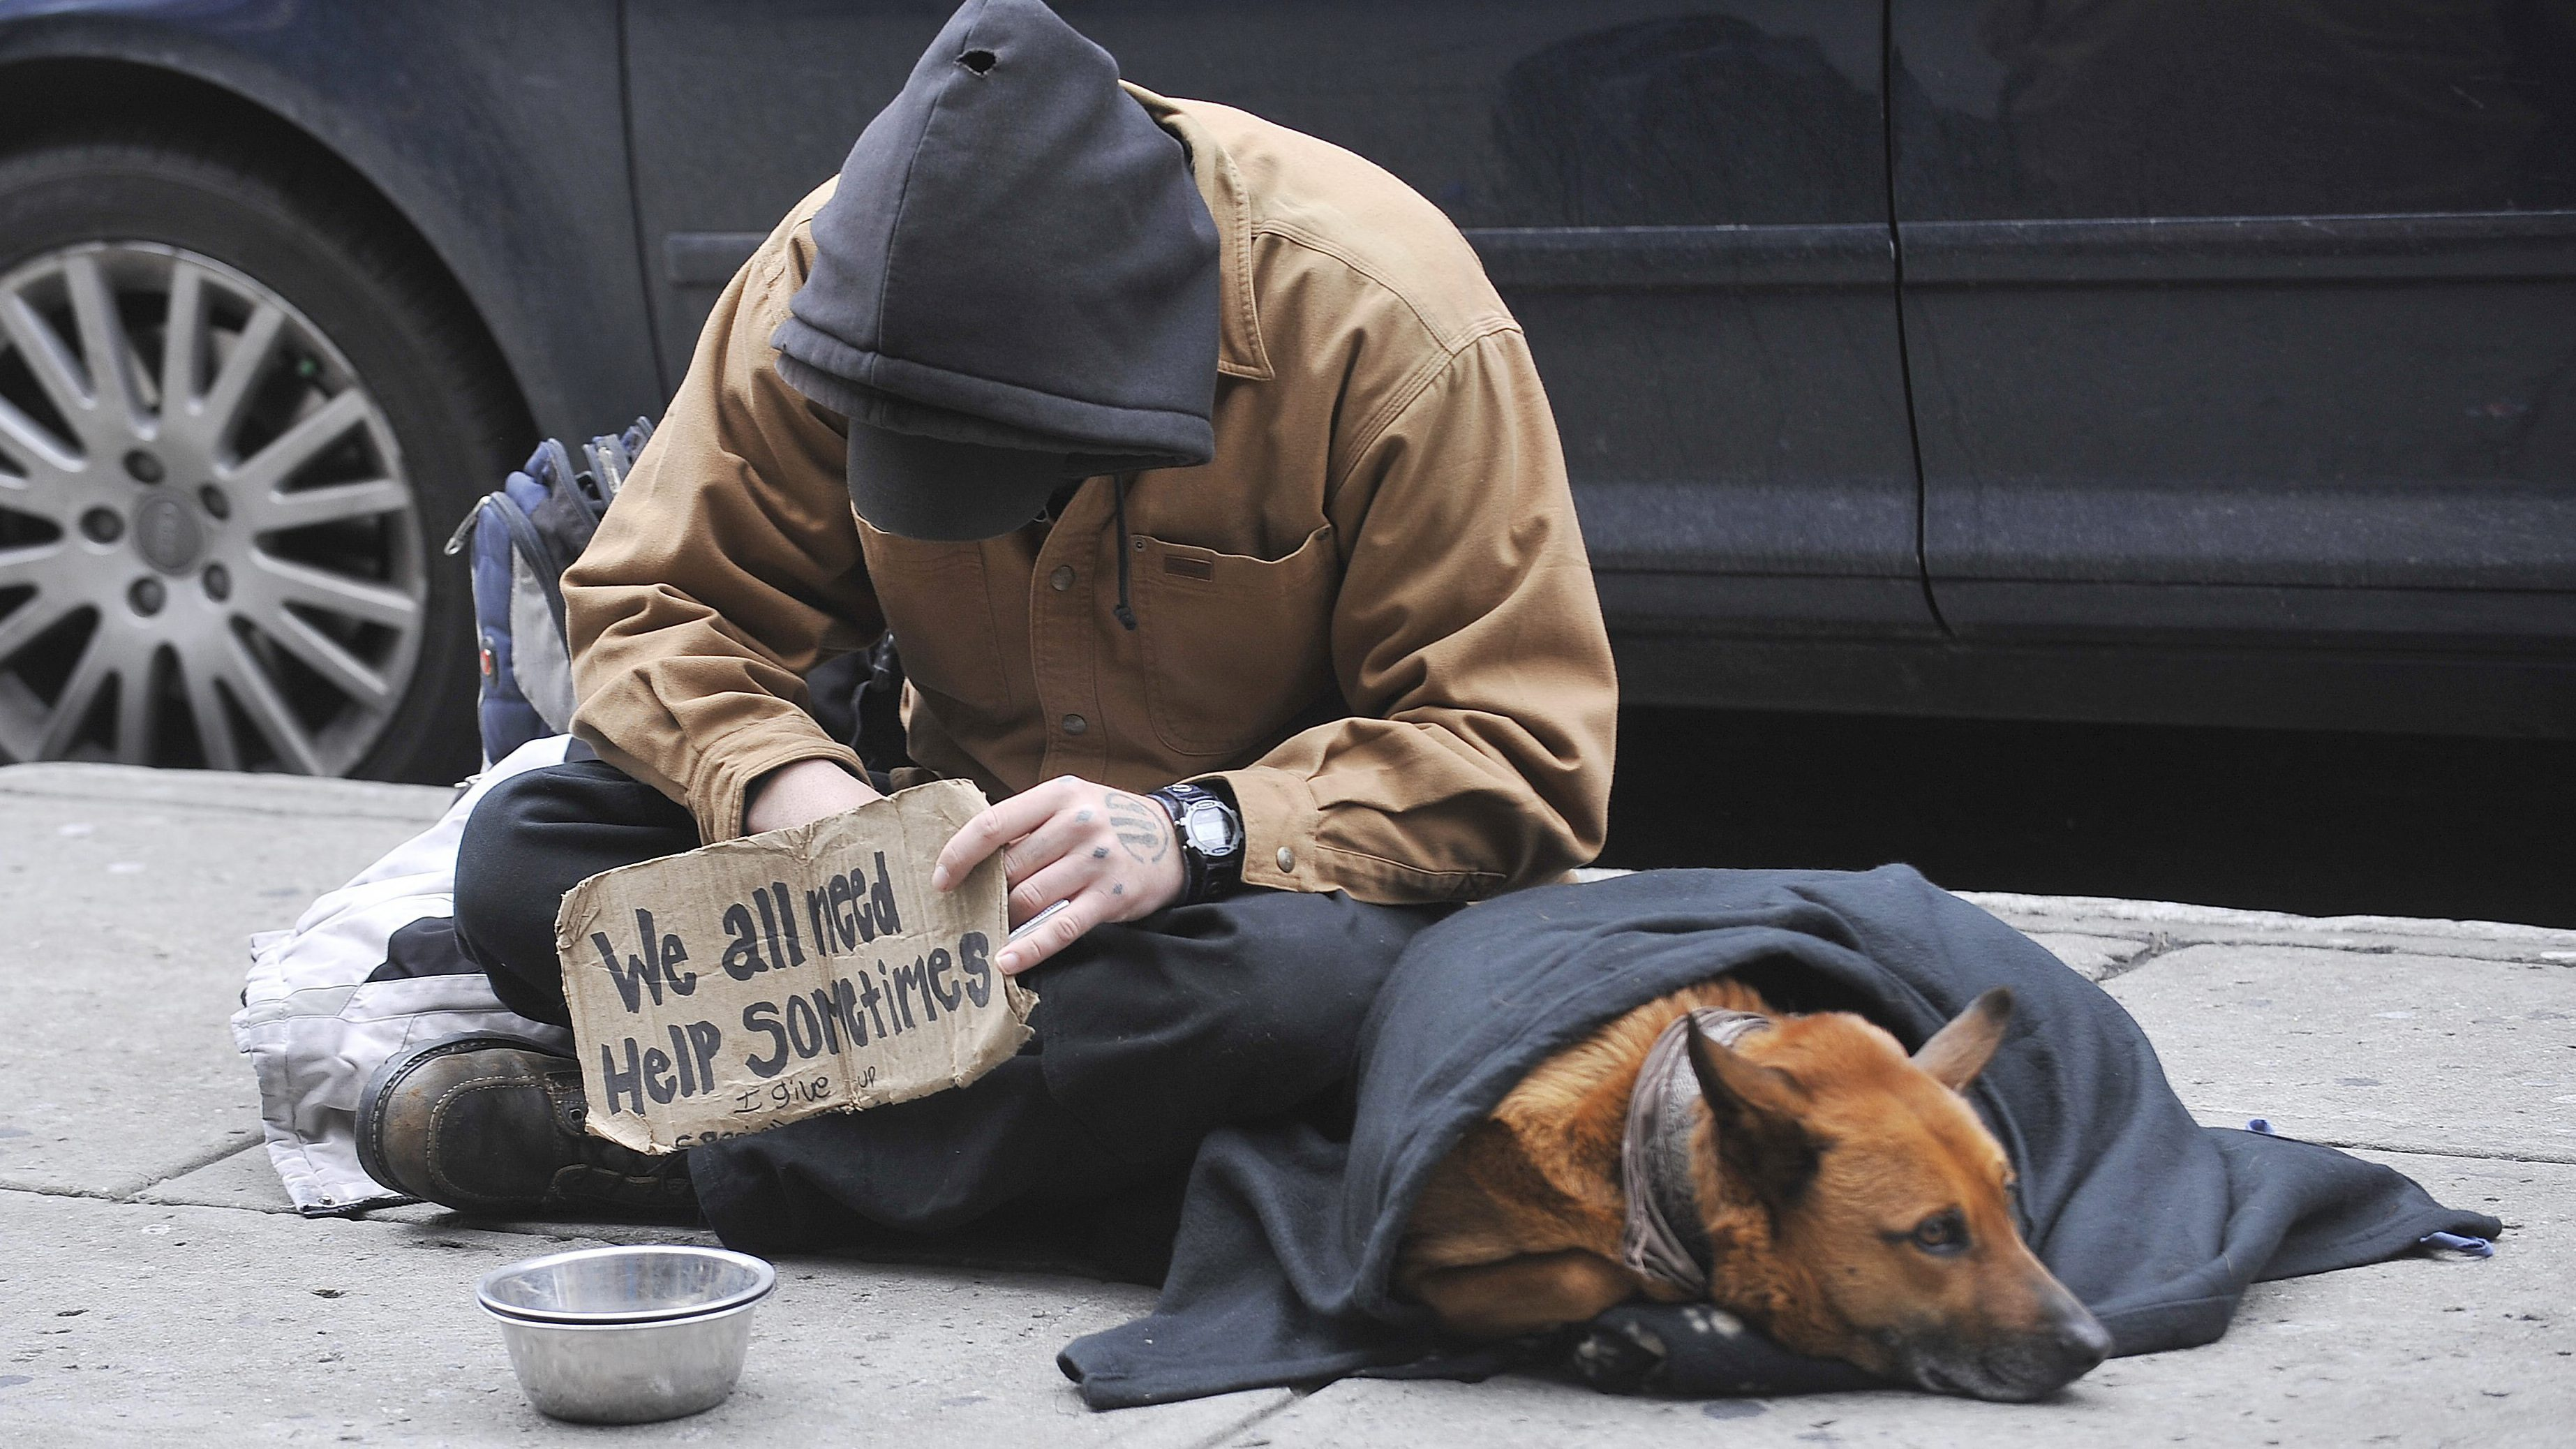 causes of homelessness in canada The first detailed profile of homeless people across the country shows addiction, physical health, mental health and family strife push people into poverty and homelessness - and, in many cases, are what keeps them there.